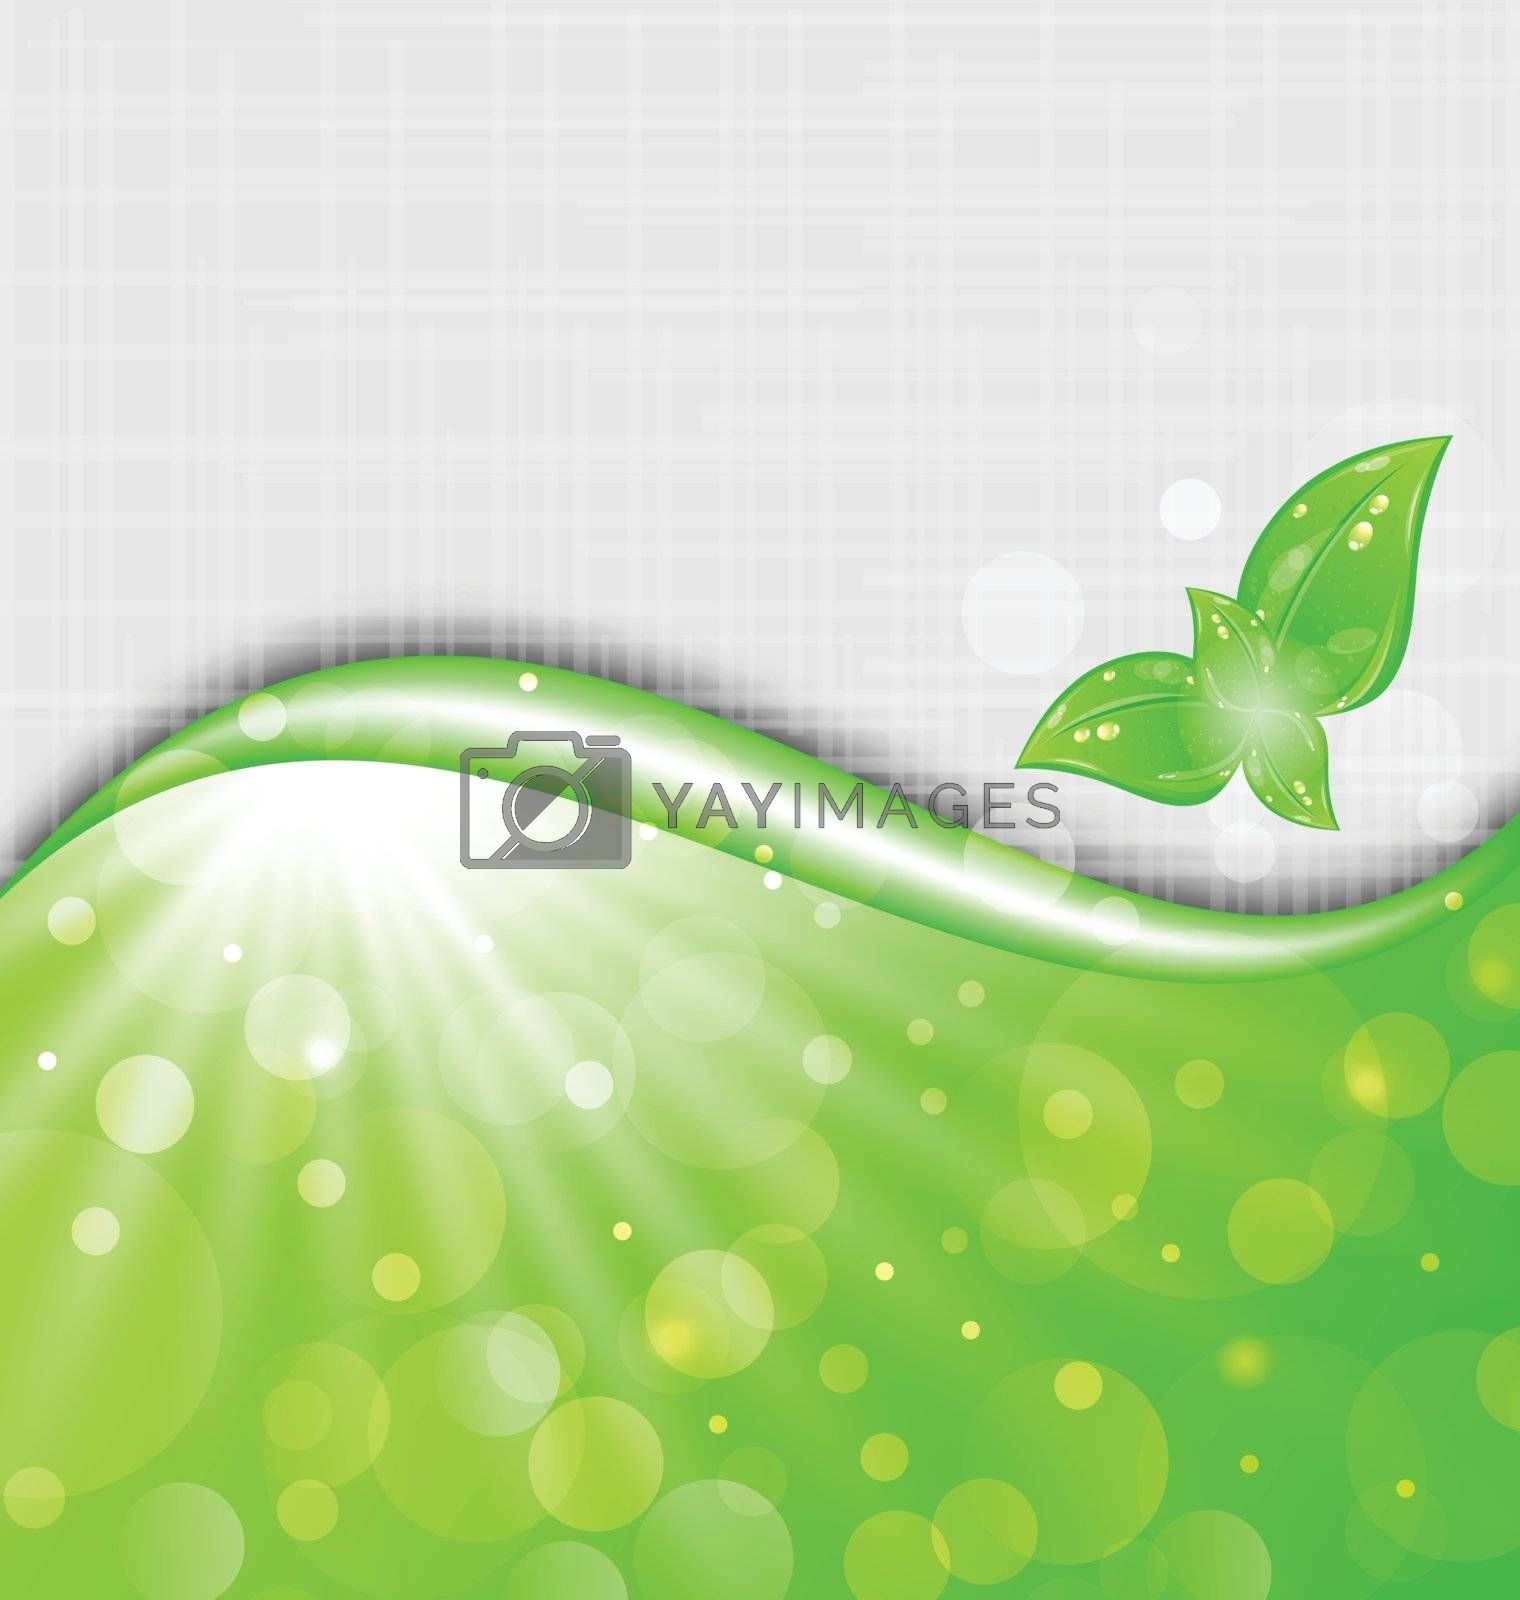 Illustration eco friendly background with leaves - vector